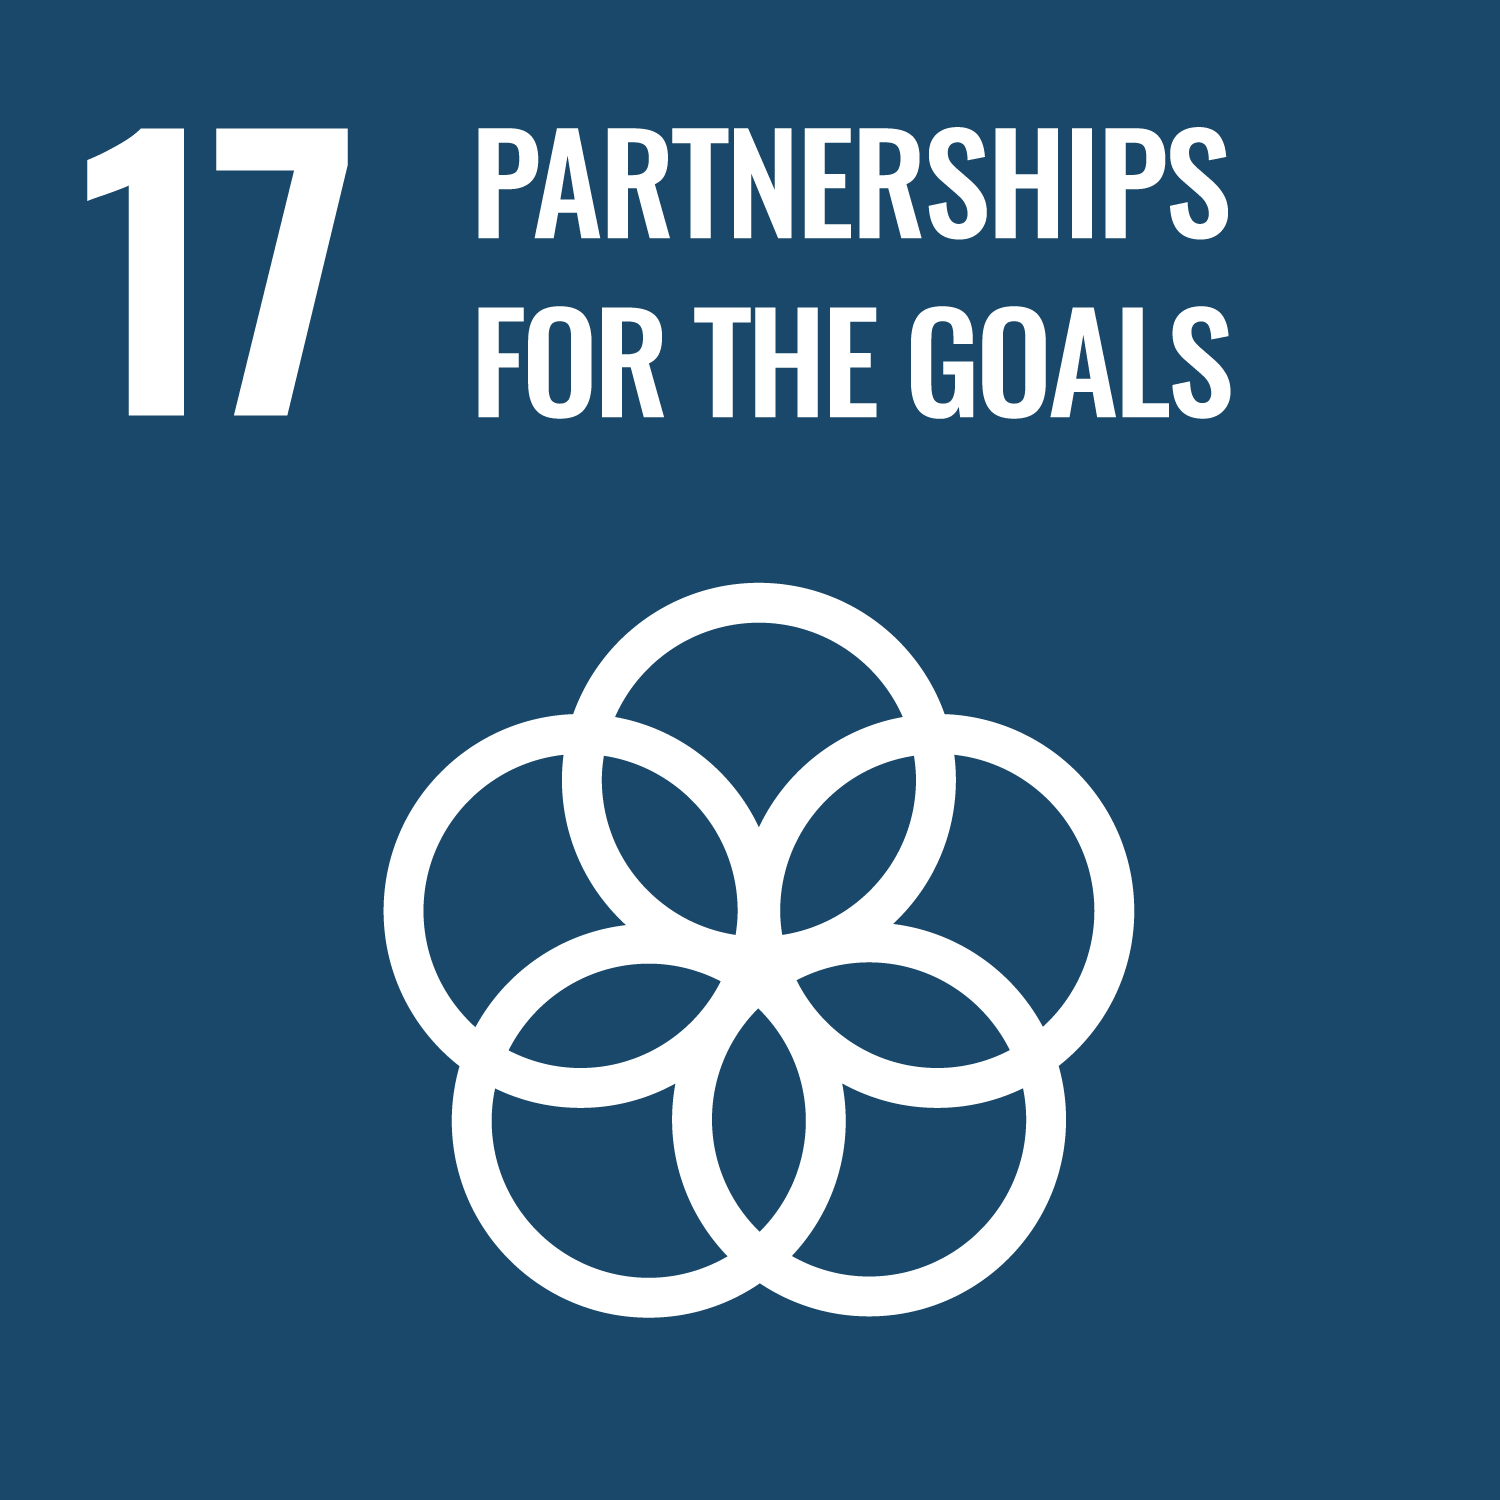 17 - Partnerships to achieve the Goal